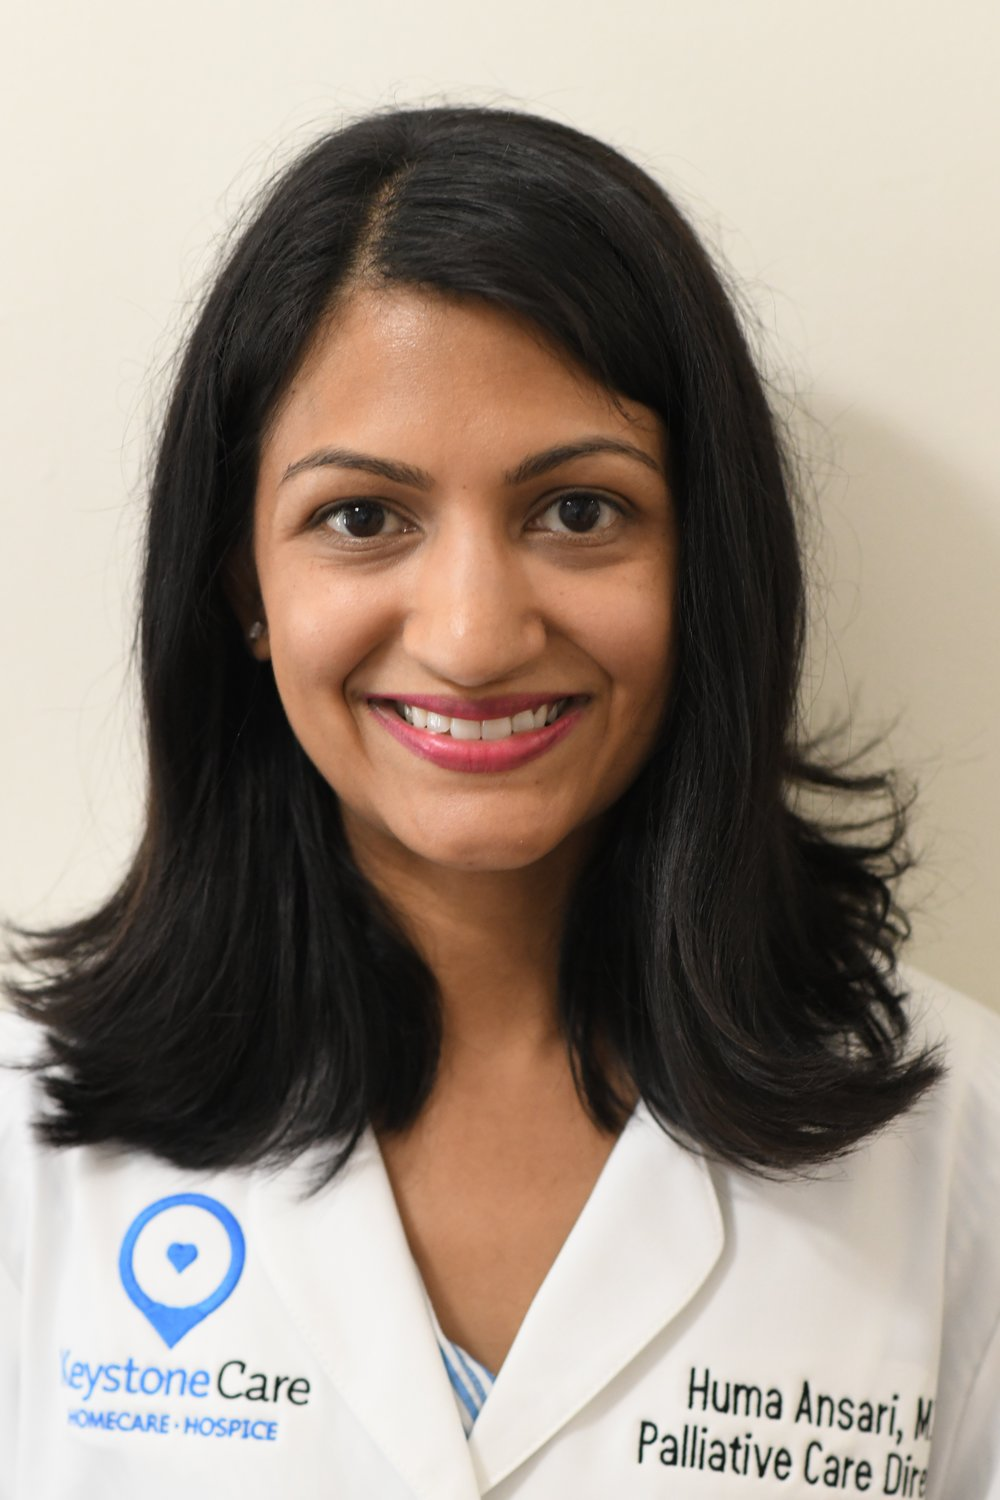 """There is a body of evidence now that demonstrates early palliative care involvement can actually help patients live better and longer,"" said Huma Ansari, MD (seen here), KeystoneCare's Medical Director of Palliative Care Services."